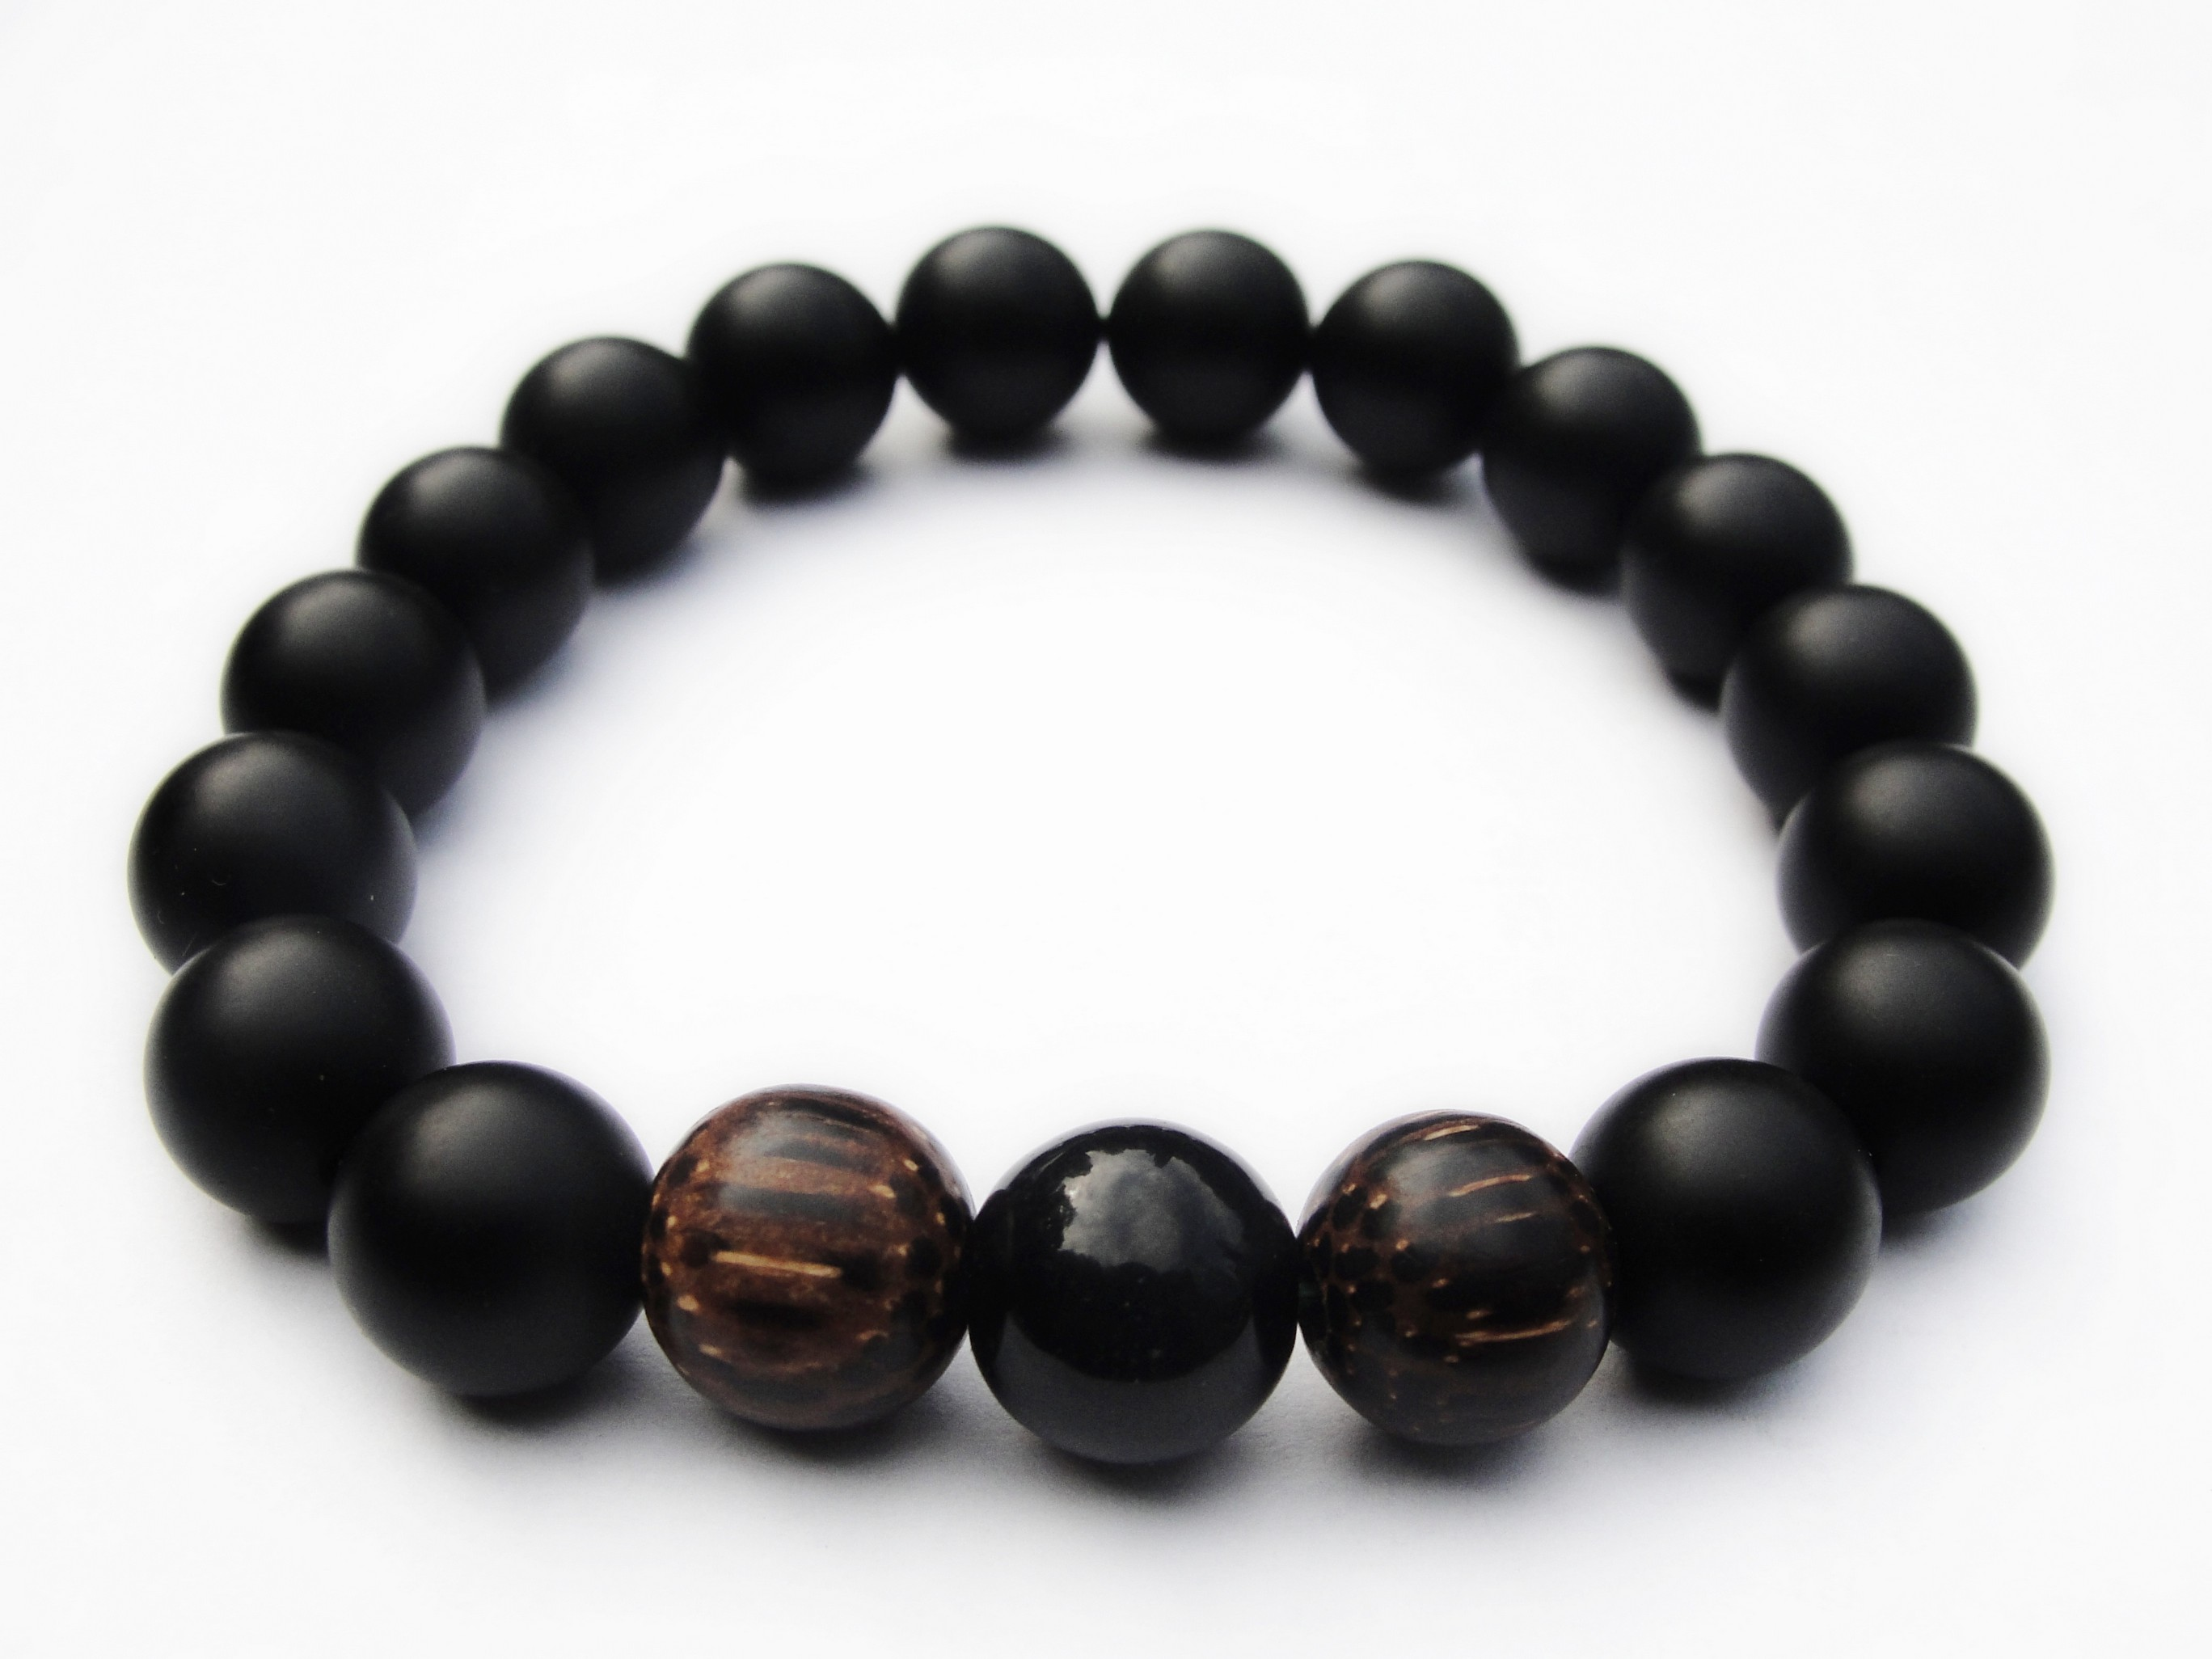 matte back gods bracelet pharaoh black products jewelry the beaded matteblack gold